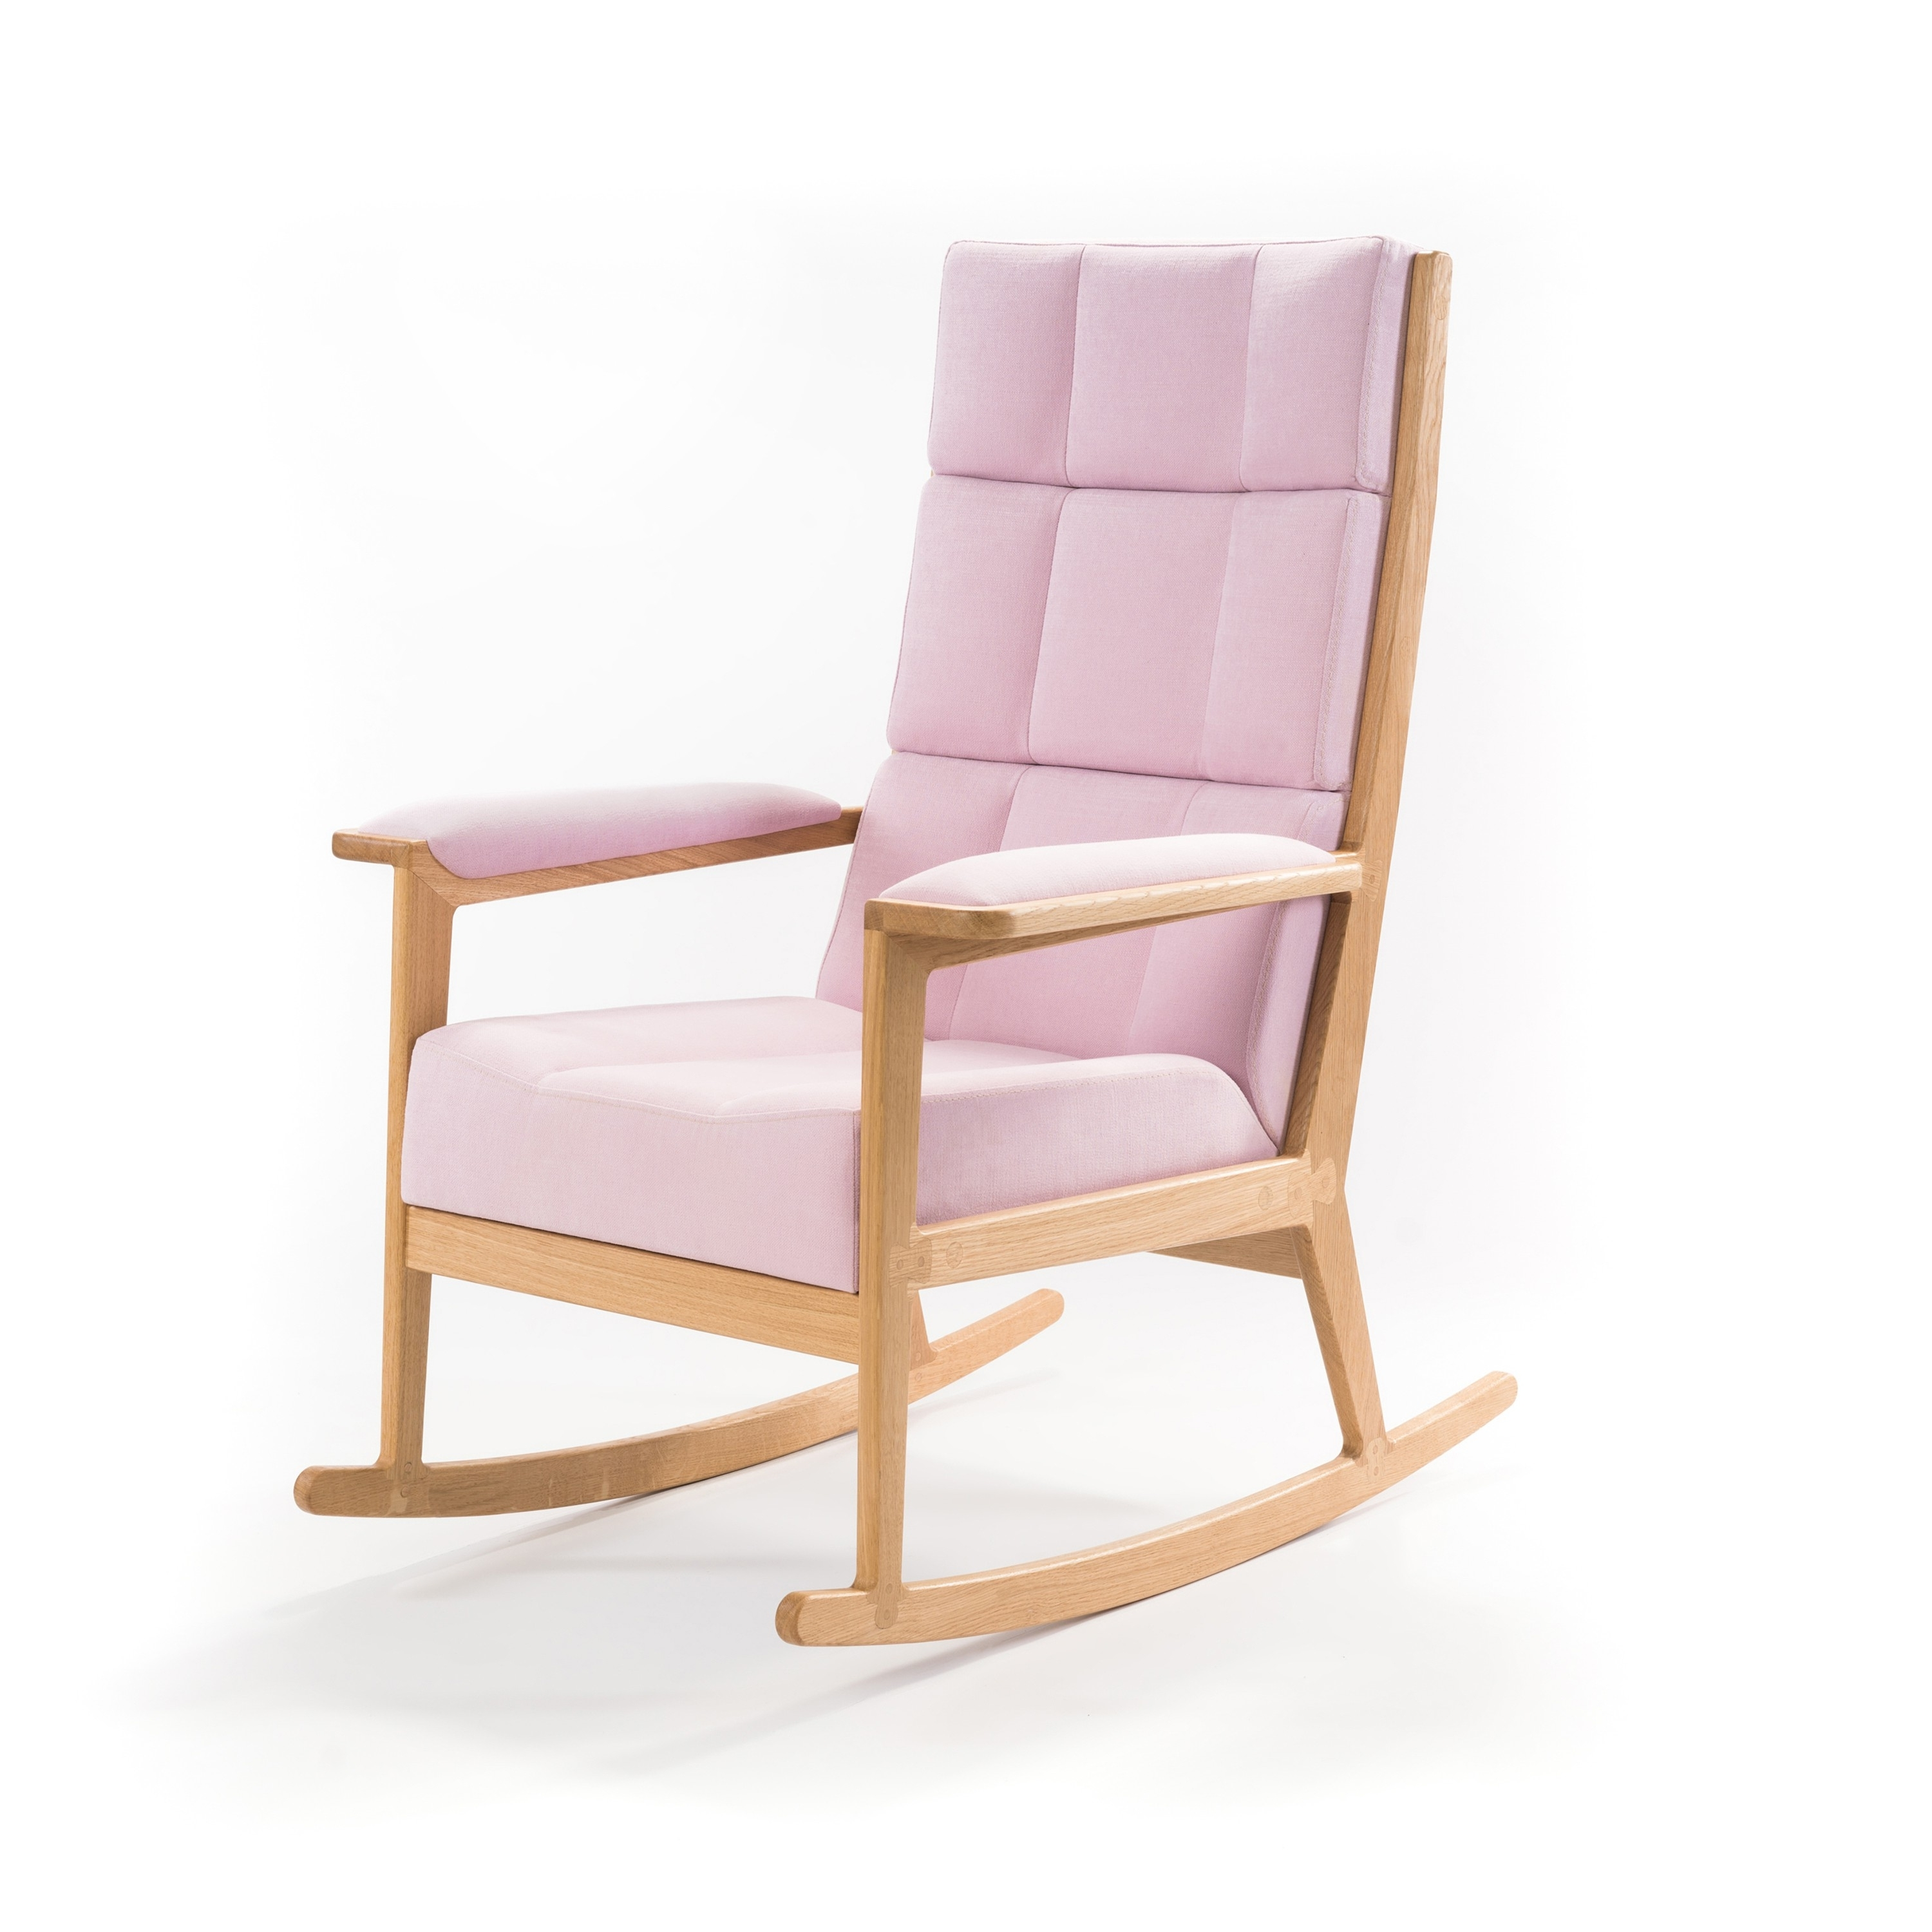 Latest Rocking Chairs At Roses Within Unbelievably Comfortable Rocking Chair In An Amazing Vintage Rose Color (View 6 of 20)